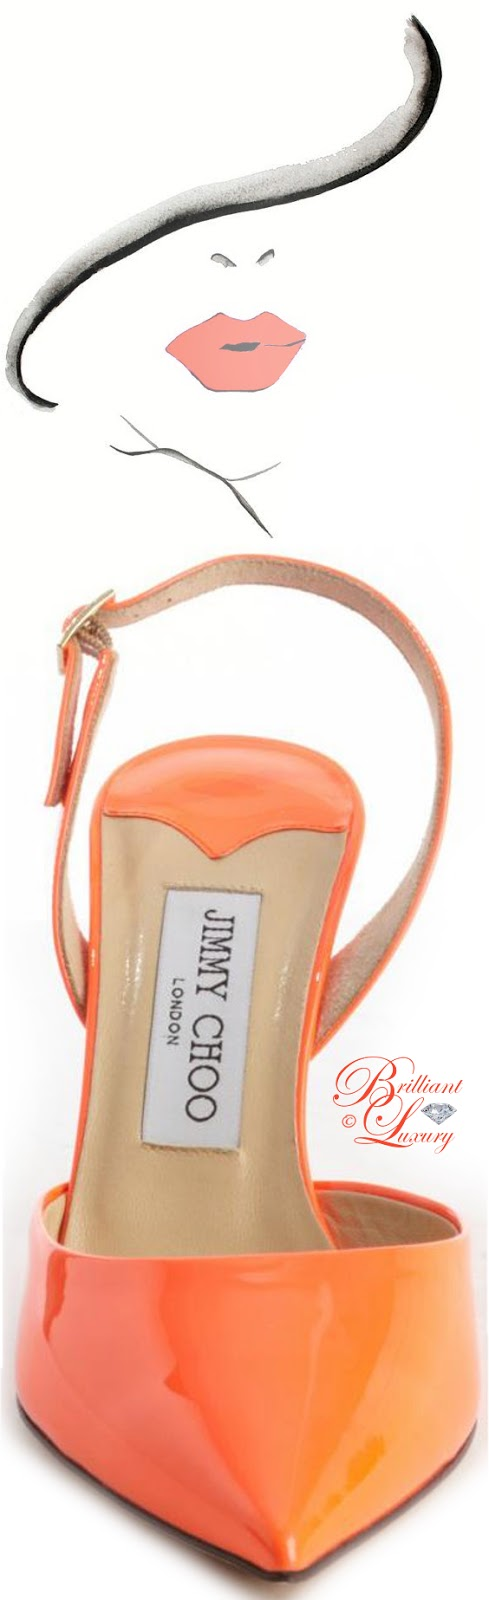 Brilliant Luxury ♦ Jimmy Choo Neon Flame Leather Pointed Toe Slingback Tilly Pumps